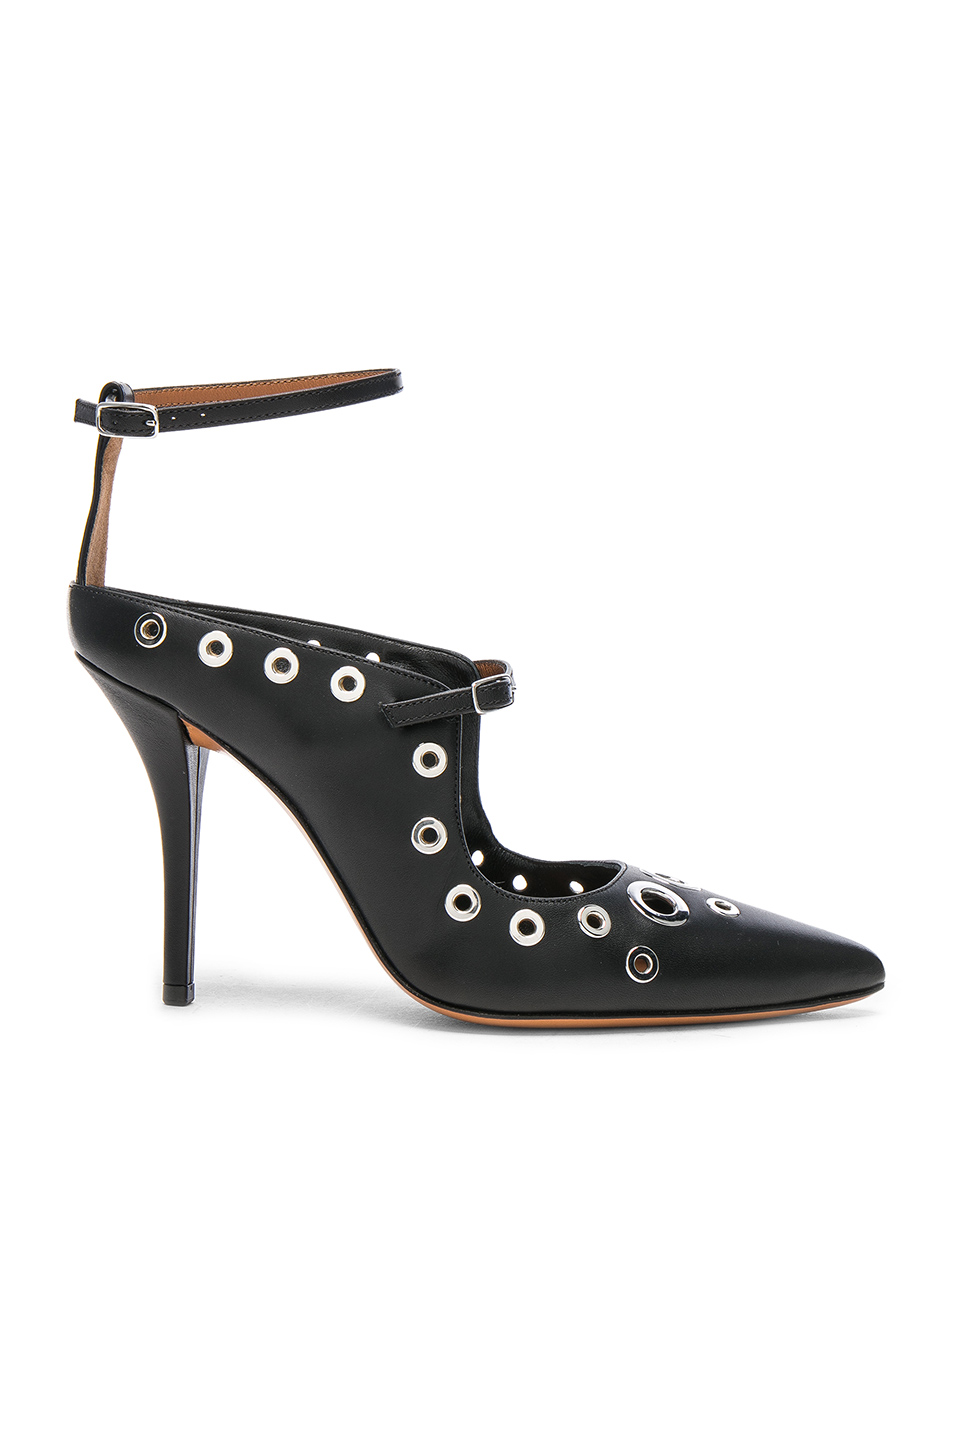 Givenchy Feminine Eyelet Pump in Black